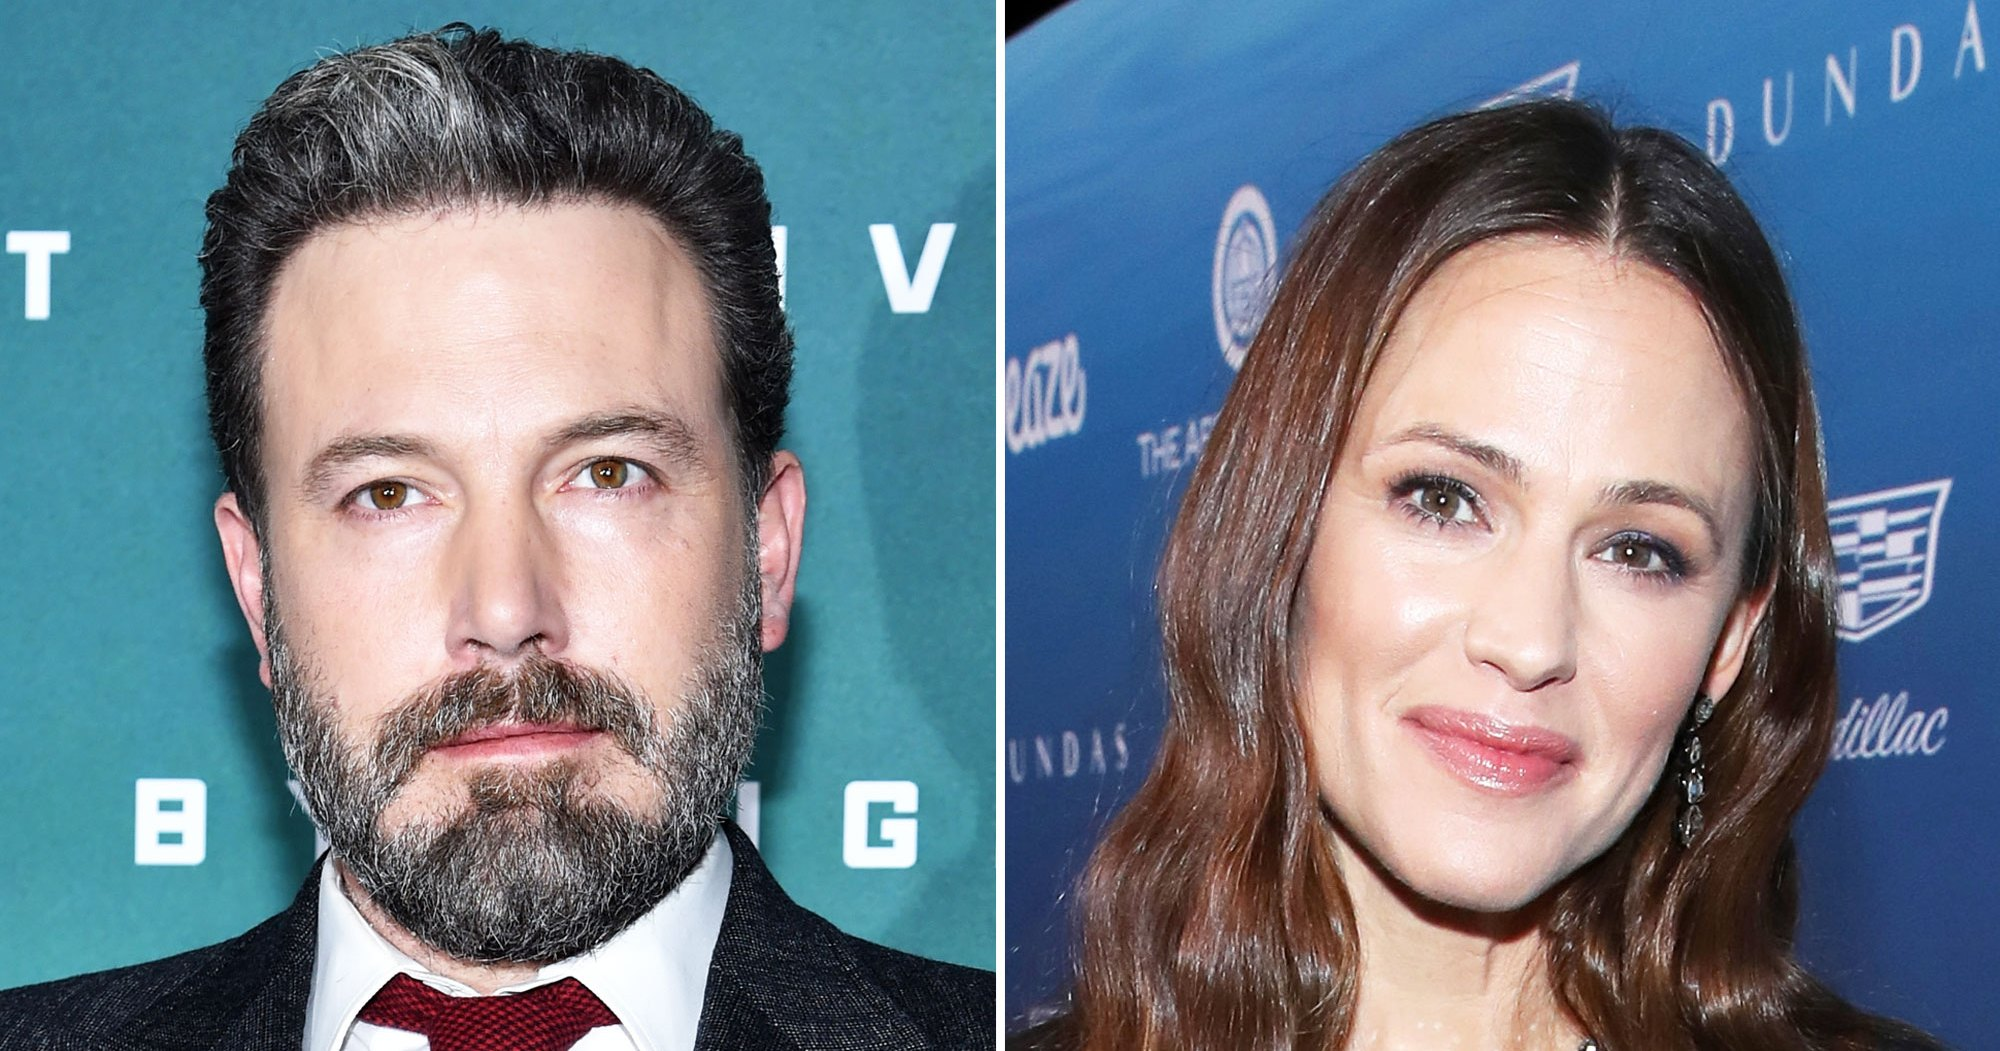 Ben Affleck Gives Son's Room Makeover, Jennifer Garner Finds 'Creepy'